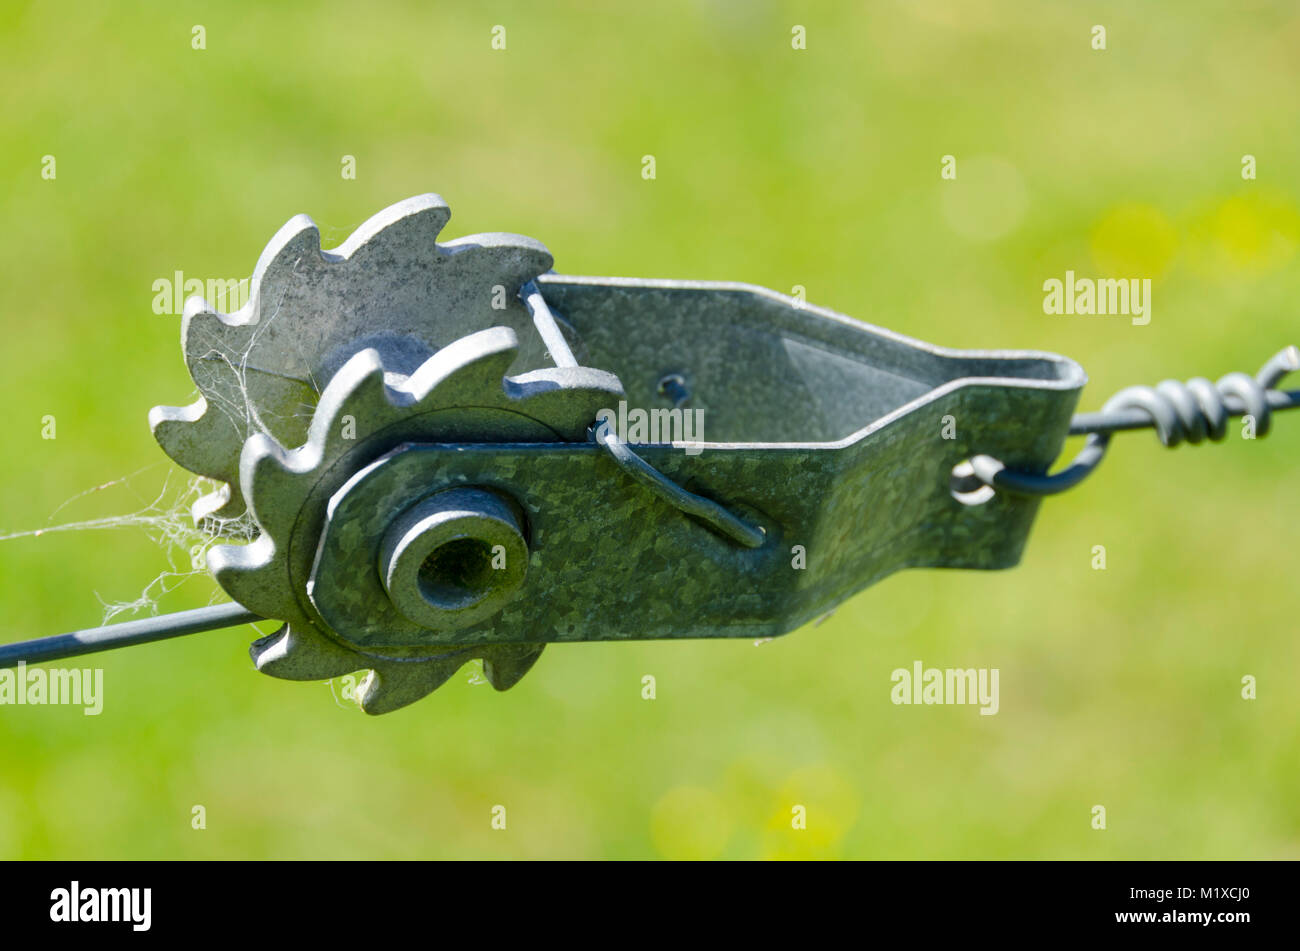 Farm fence wire tensioner Stock Photo: 173299000 - Alamy